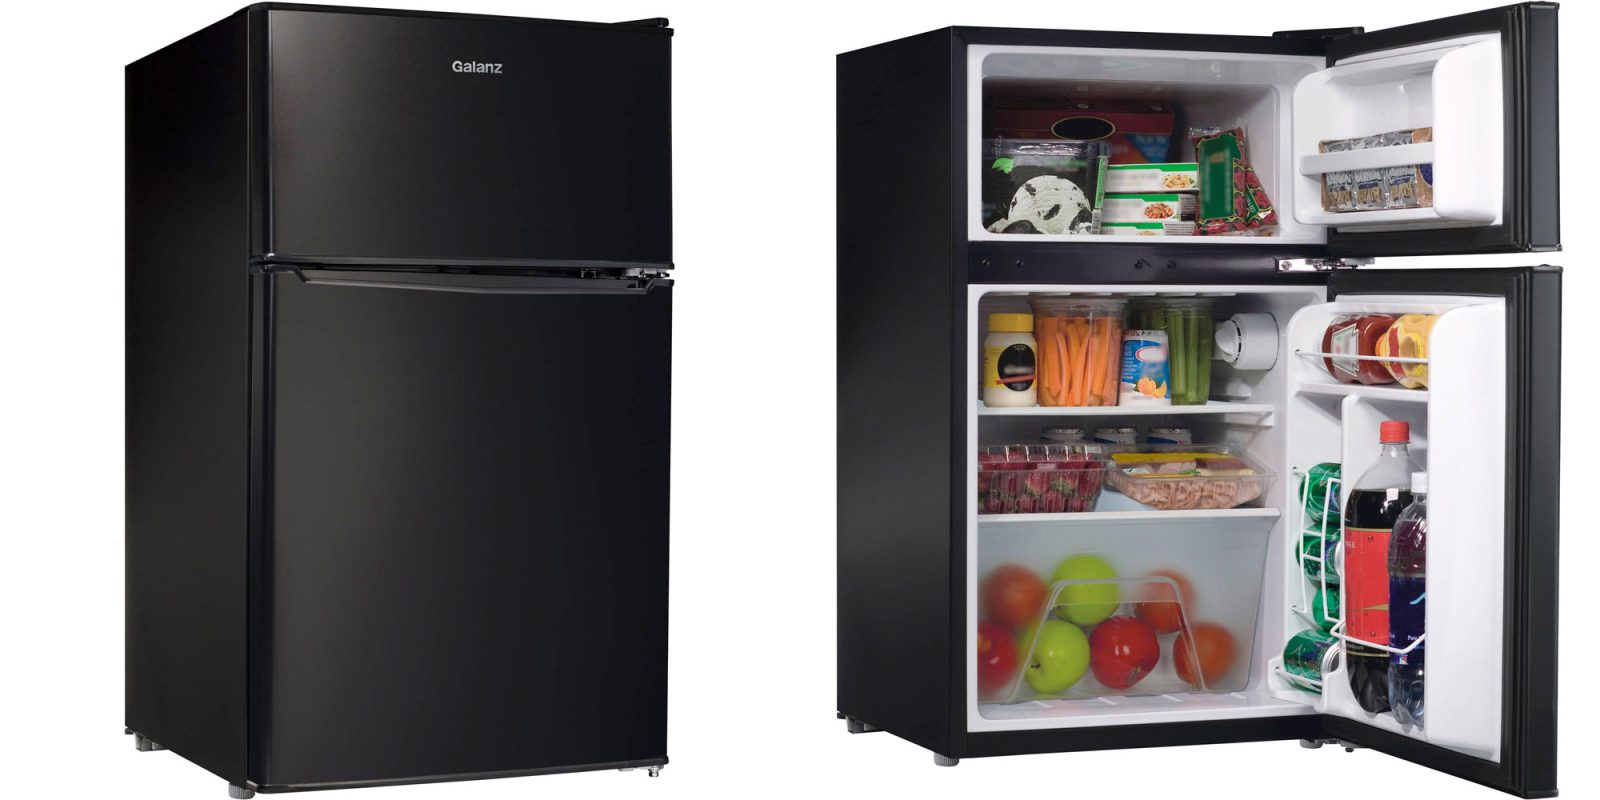 This 3 1 Cu Ft Mini Fridge Is Perfect For The Dorm Or